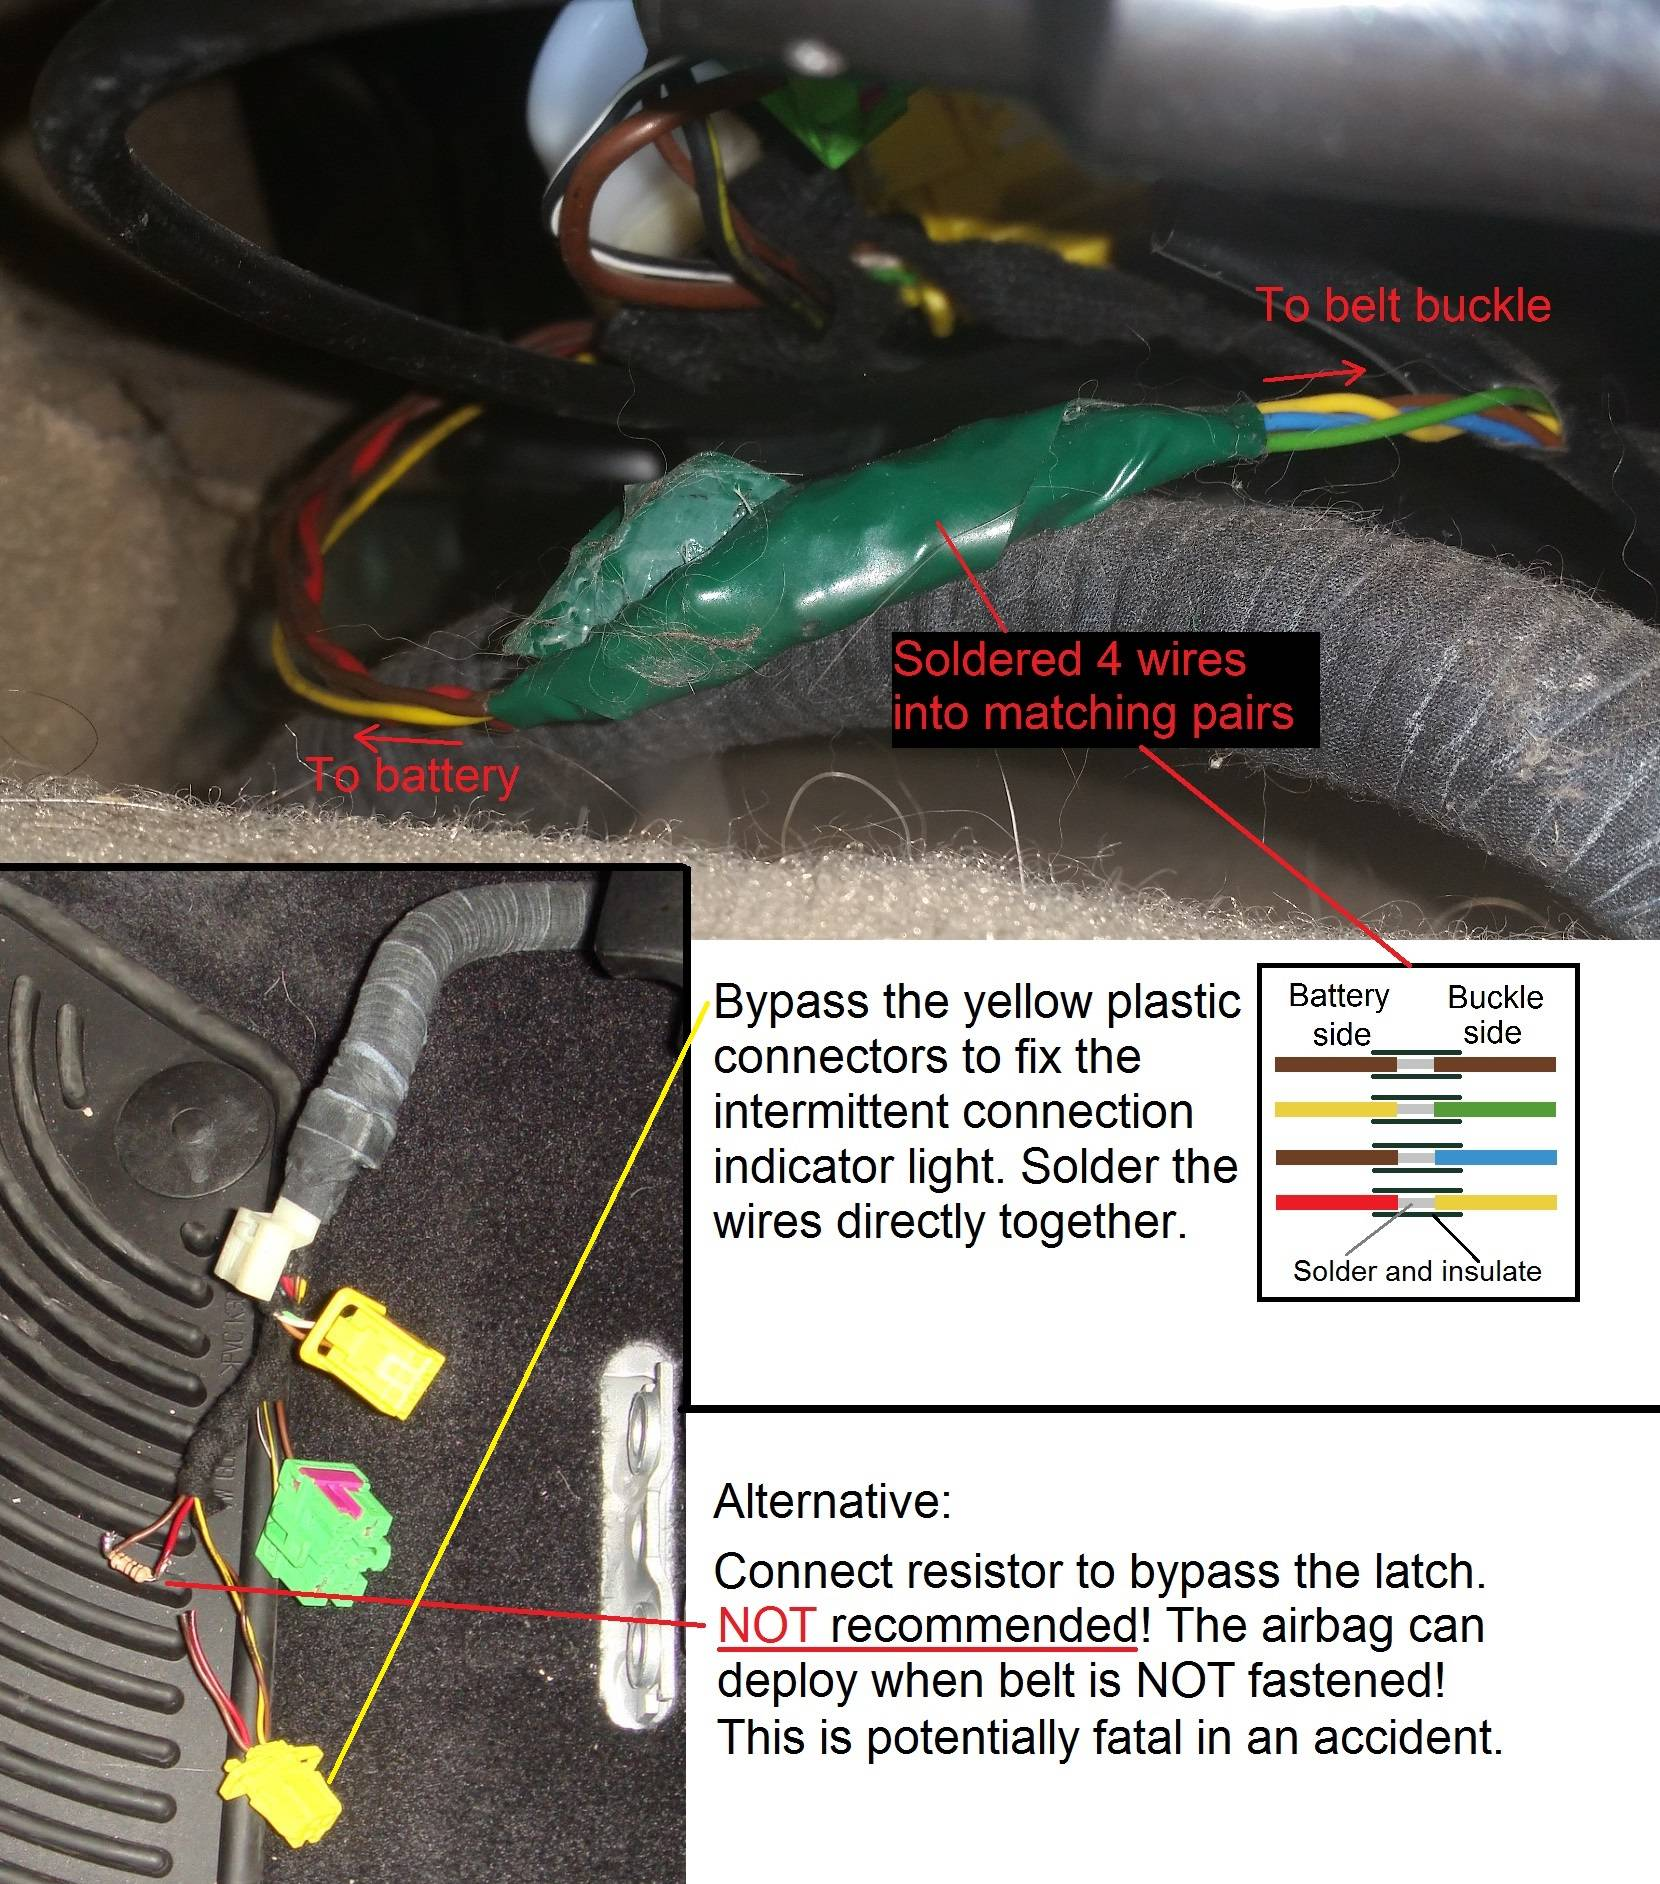 hight resolution of wiring vw mk4 golf gti airbag indicator warning light motor vw alternator wiring solder wires driver